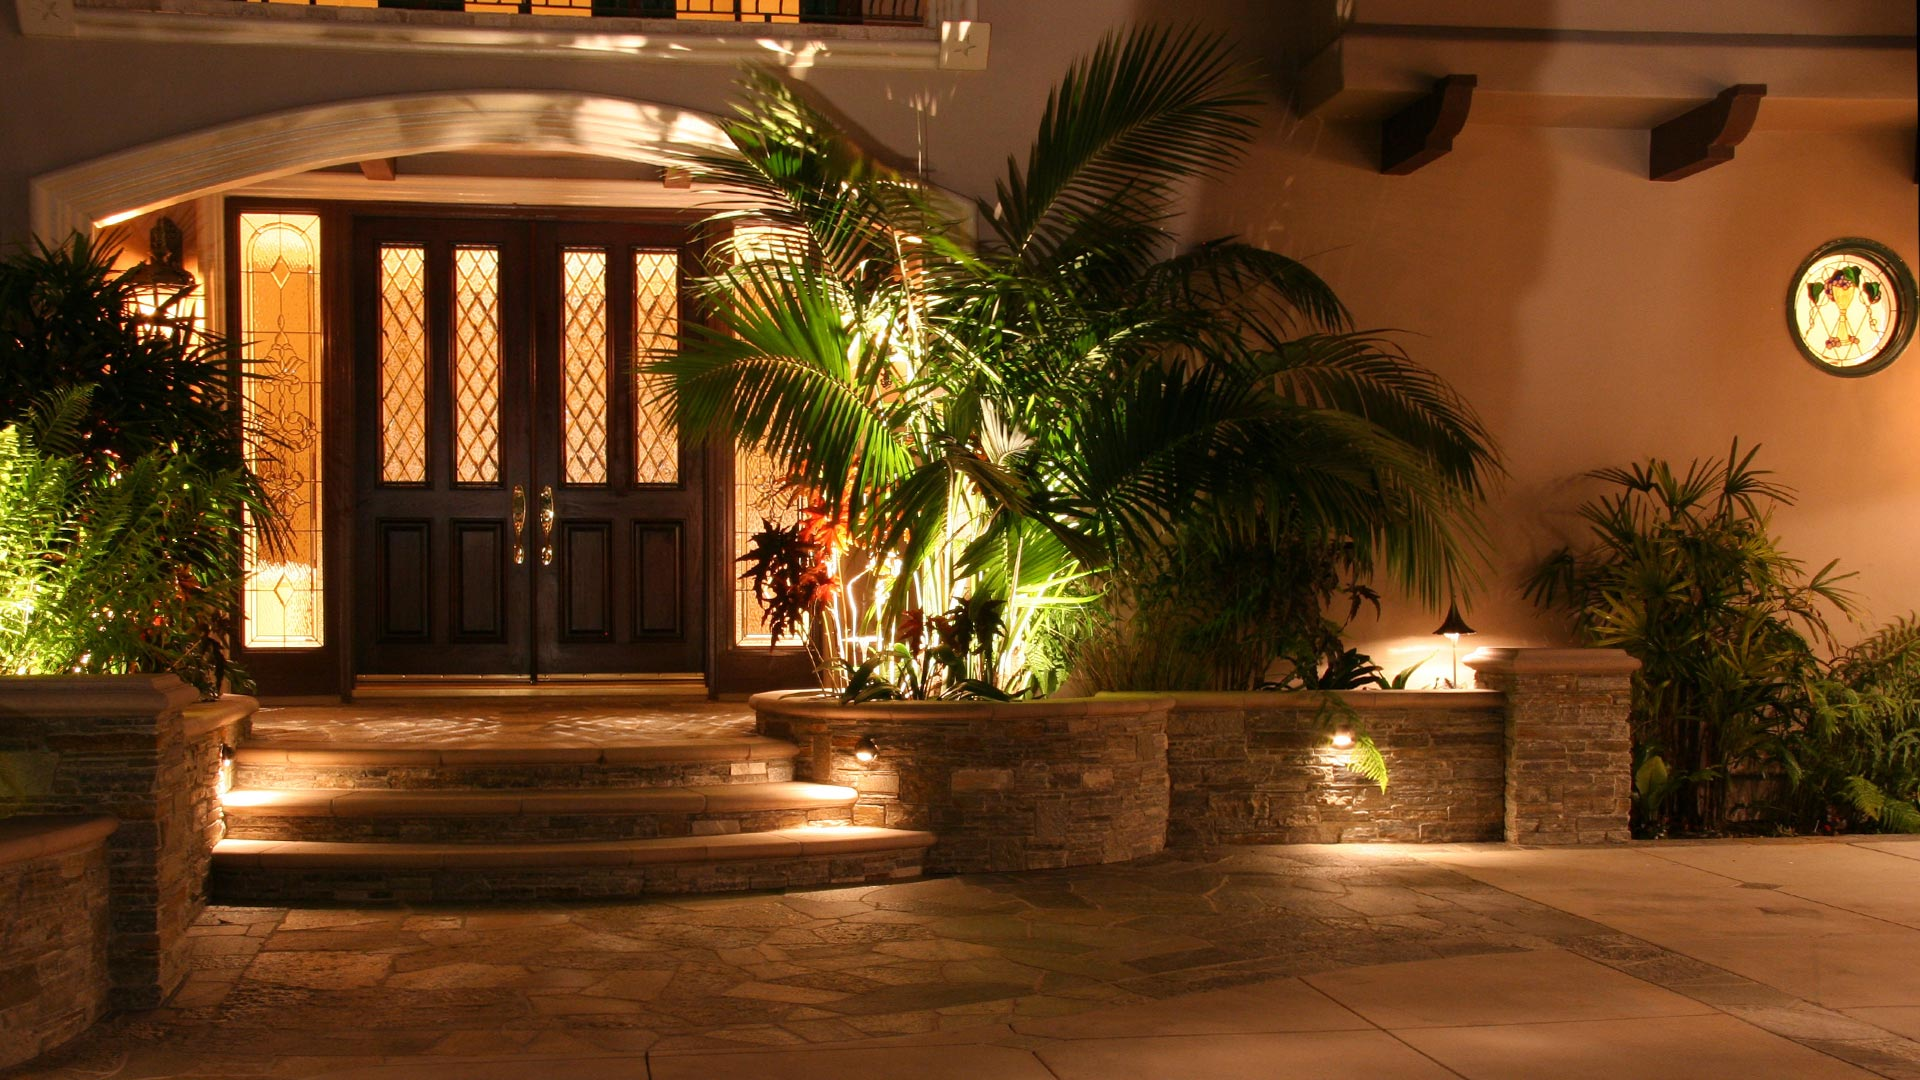 Landscape lighting services aloadofball Gallery